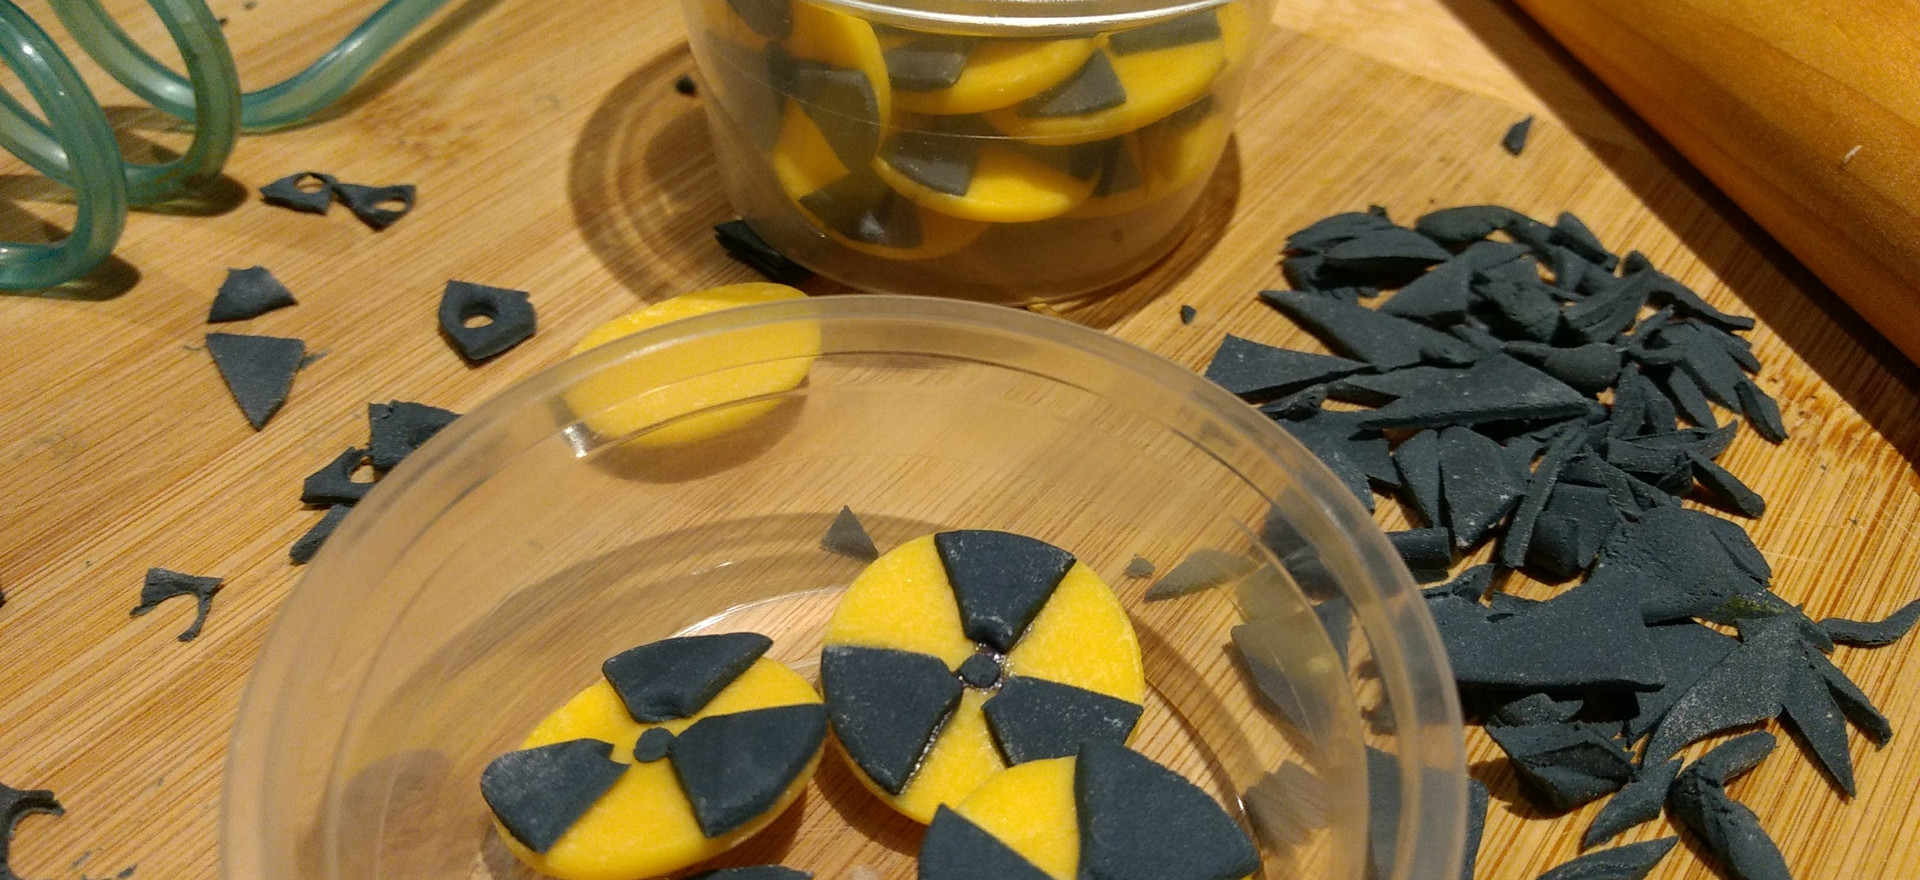 My Mad Scientist Mumy BookLaunch-Cake Toppers (Radioactive).jpg